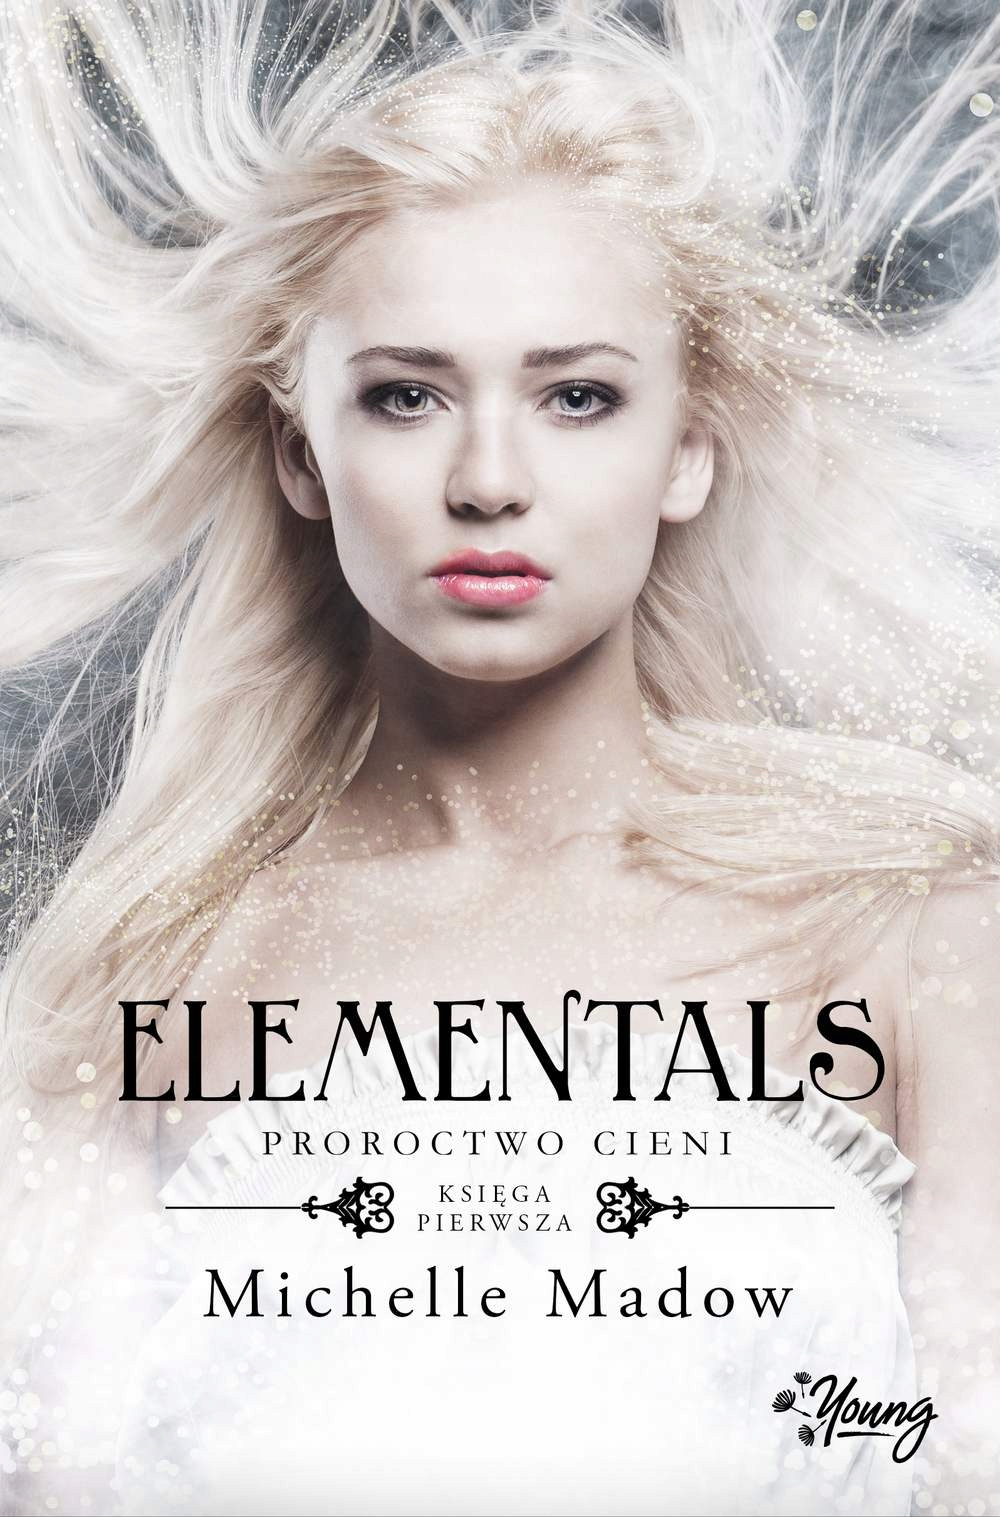 Elementals 1. Proroctwo cieni Michelle Madow